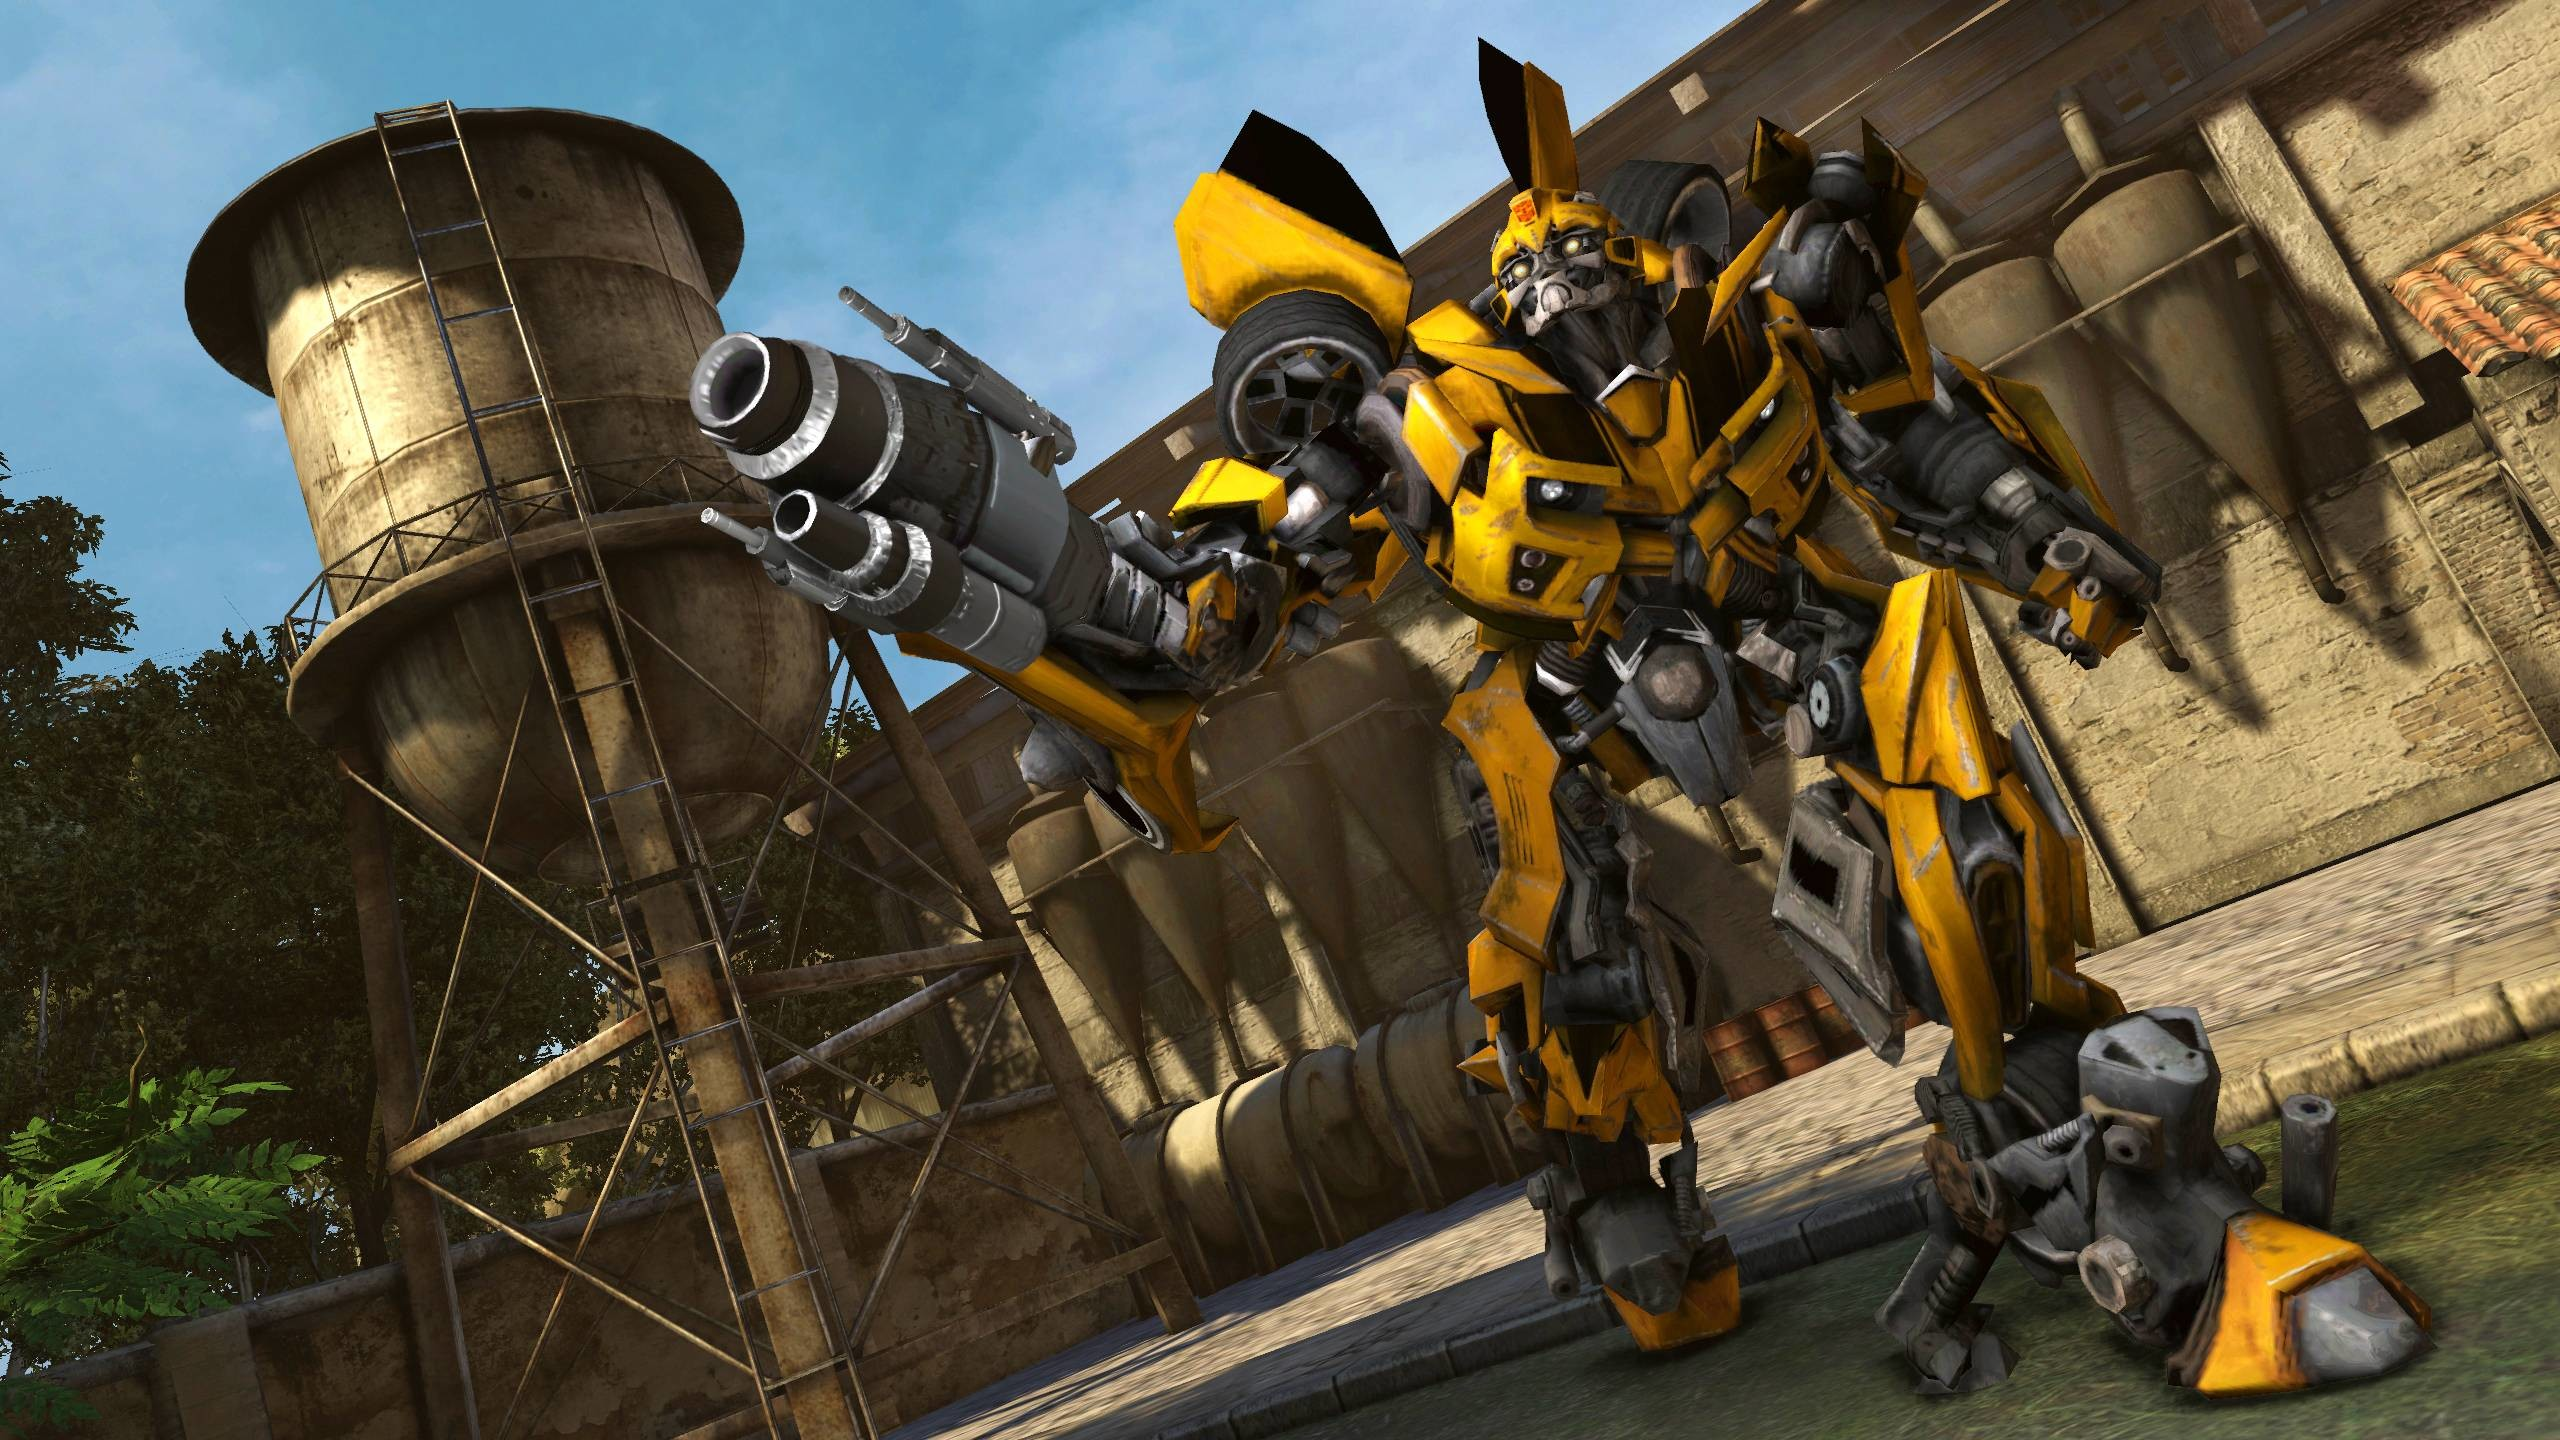 2560x1440 Transformers 2 Bumblebee Wallpaper